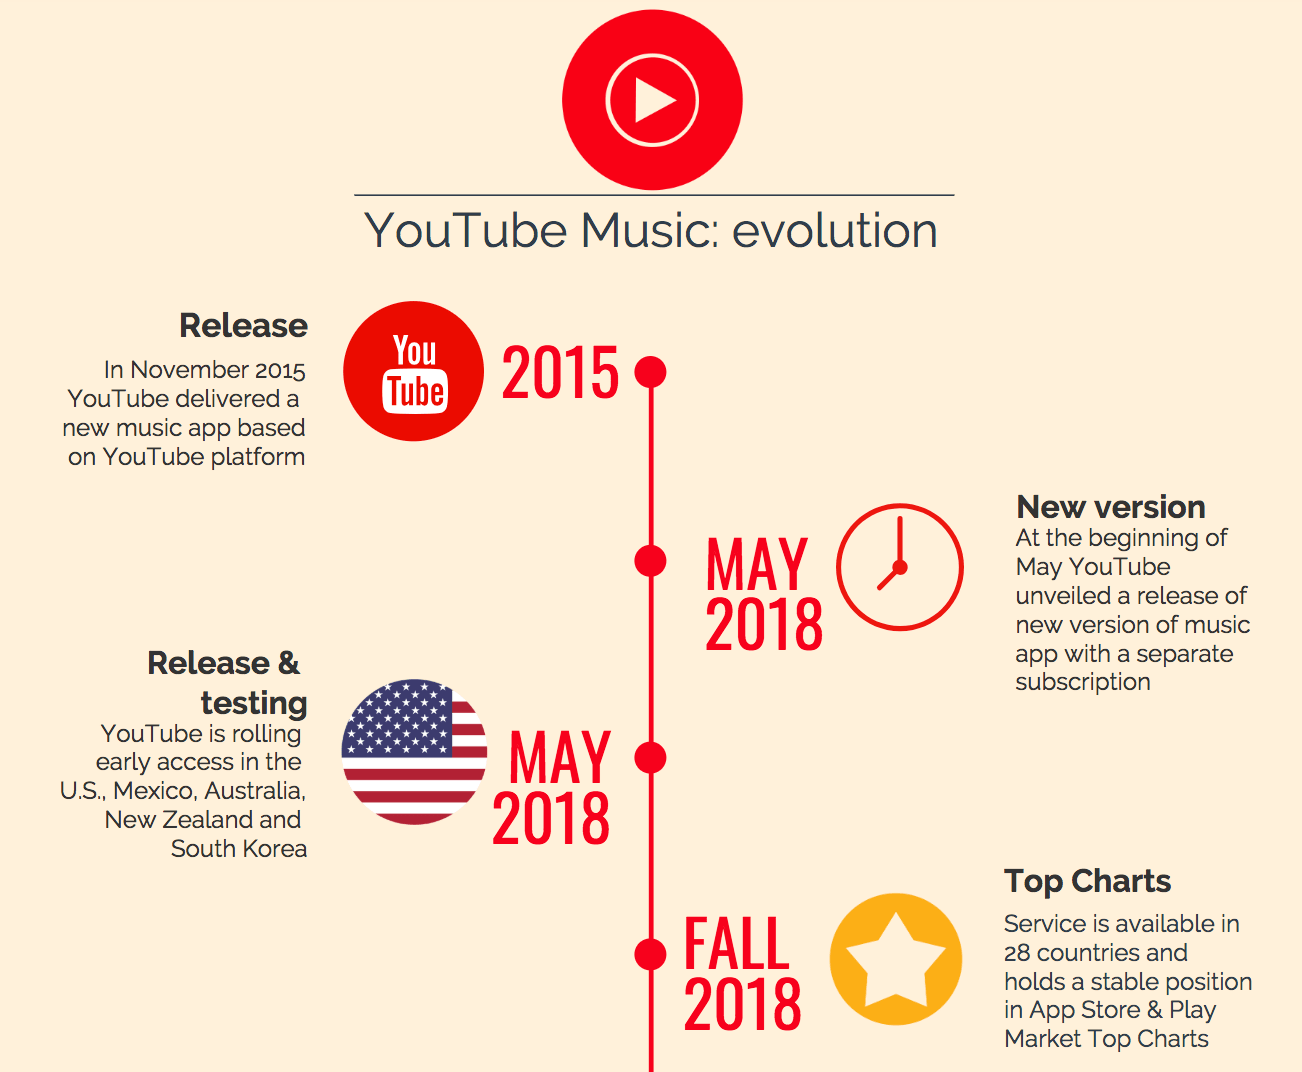 Advertising strategy of YouTube Music